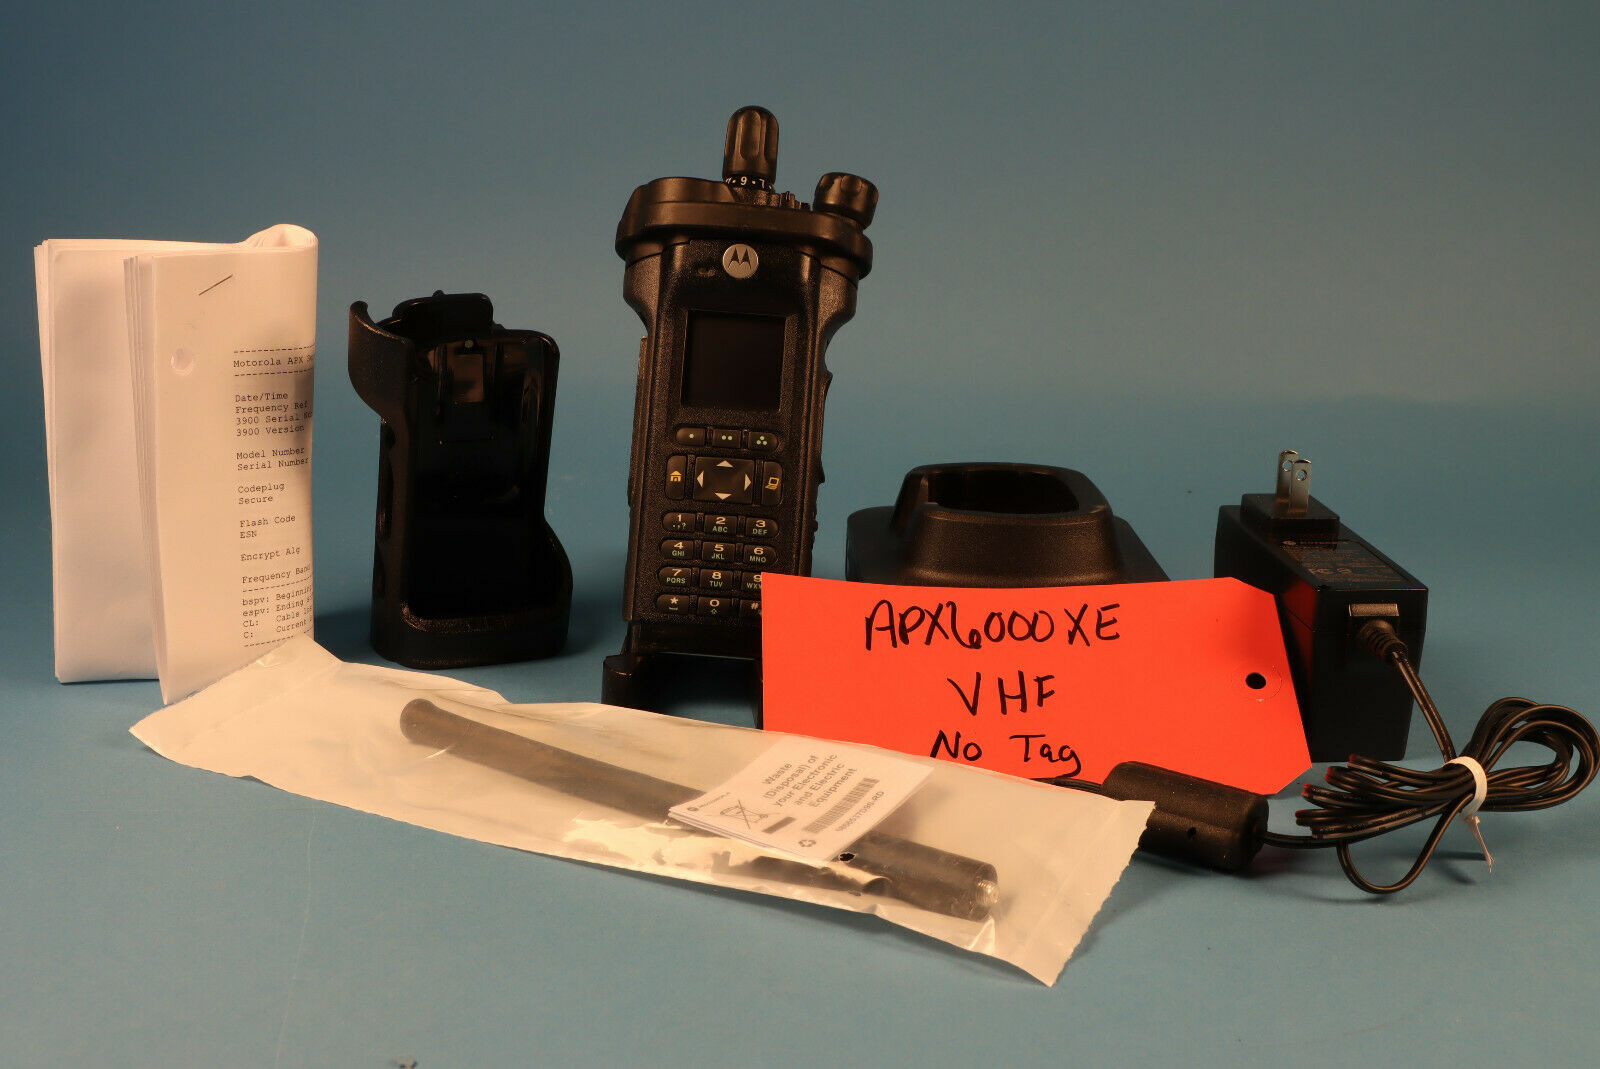 Motorola APX6000XE  VHF  FPP w/charger, antenna, Holster *no Tag. Available Now for 2200.00